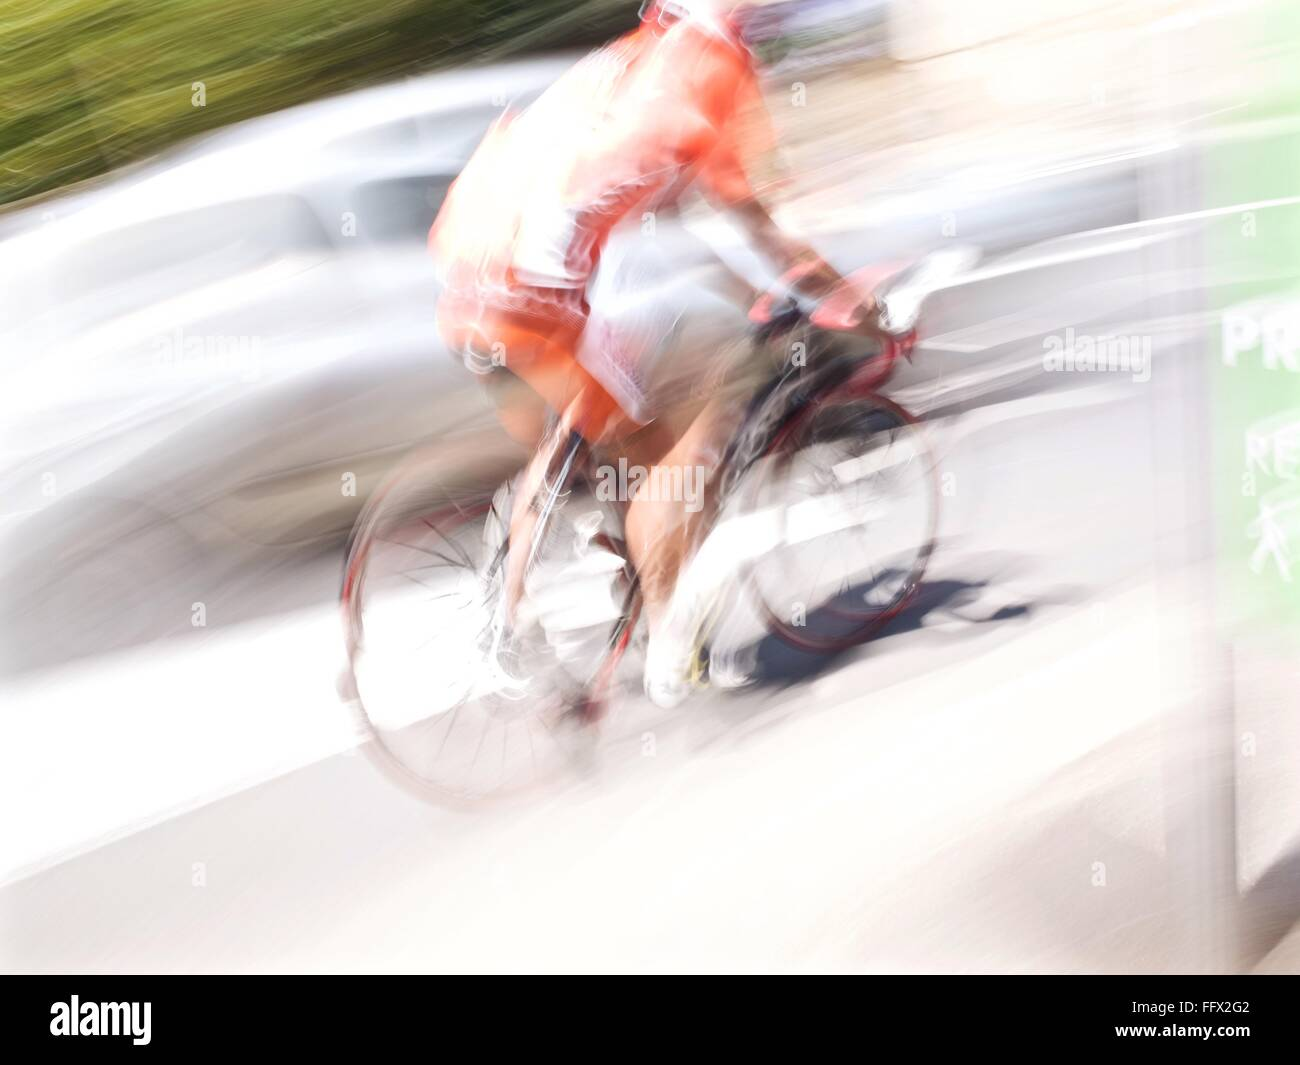 Blurred Motion Of Man Riding Bicycle On Road During Sunny Day - Stock Image